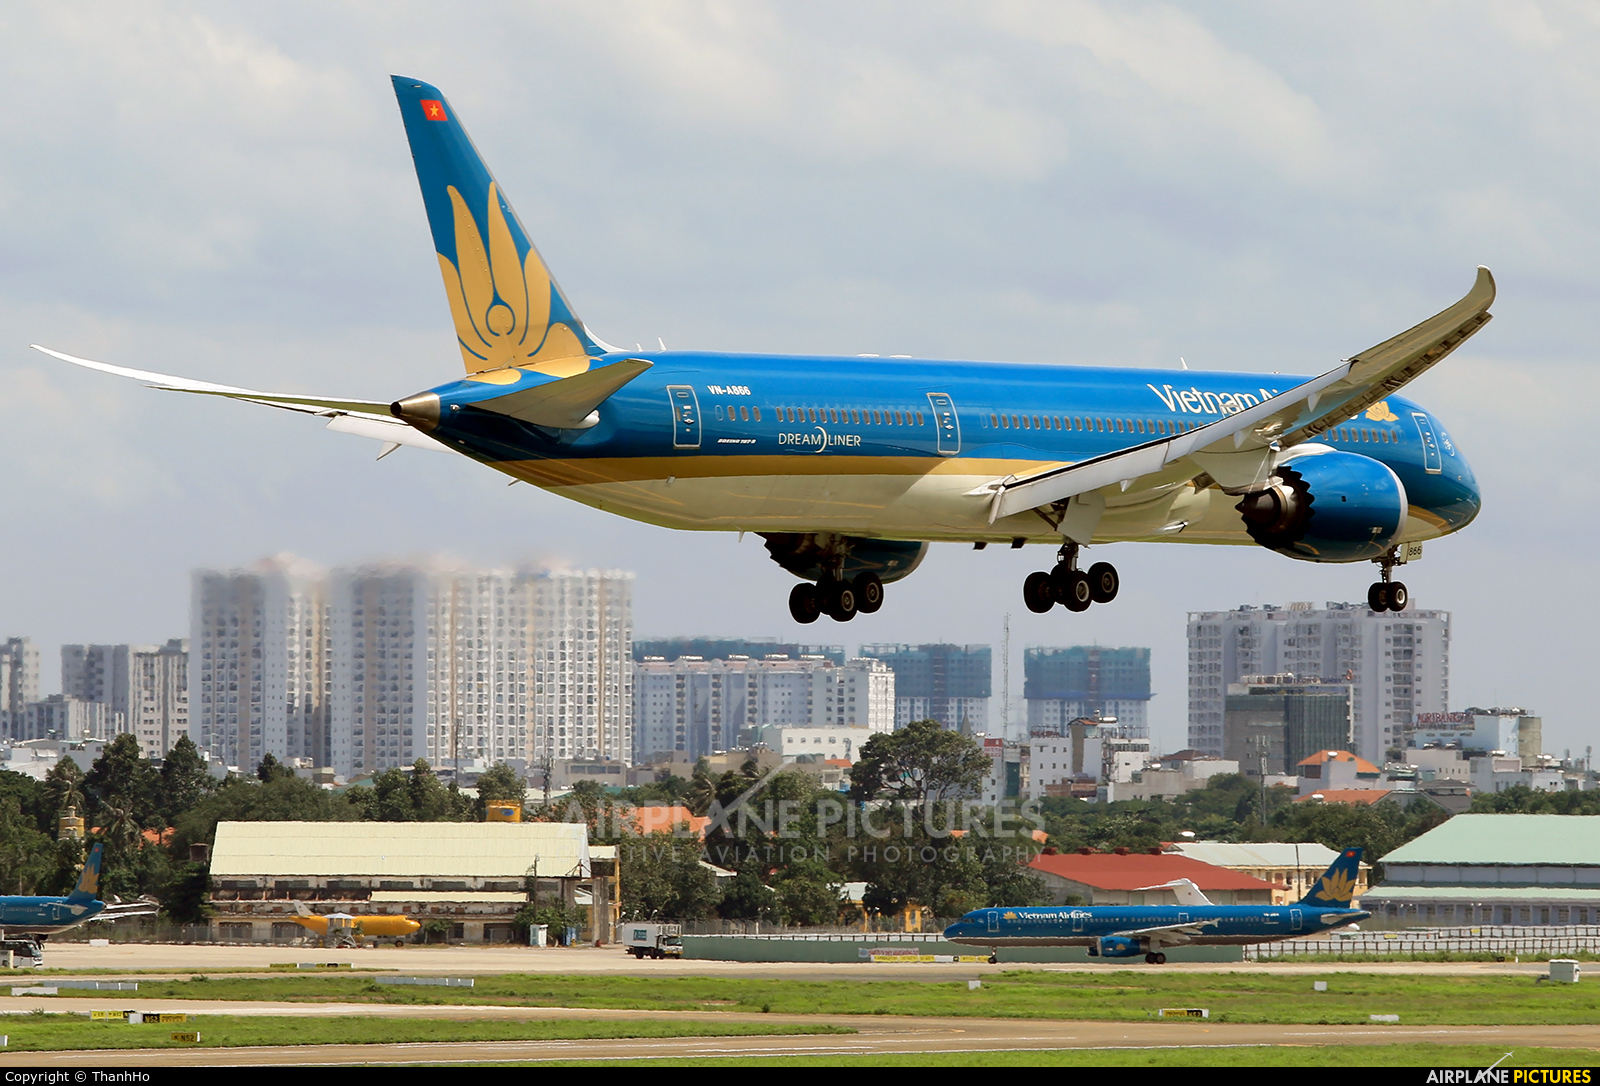 Vietnam Airlines VN-A866 aircraft at Ho Chi Minh City - Tan Son Nhat Intl